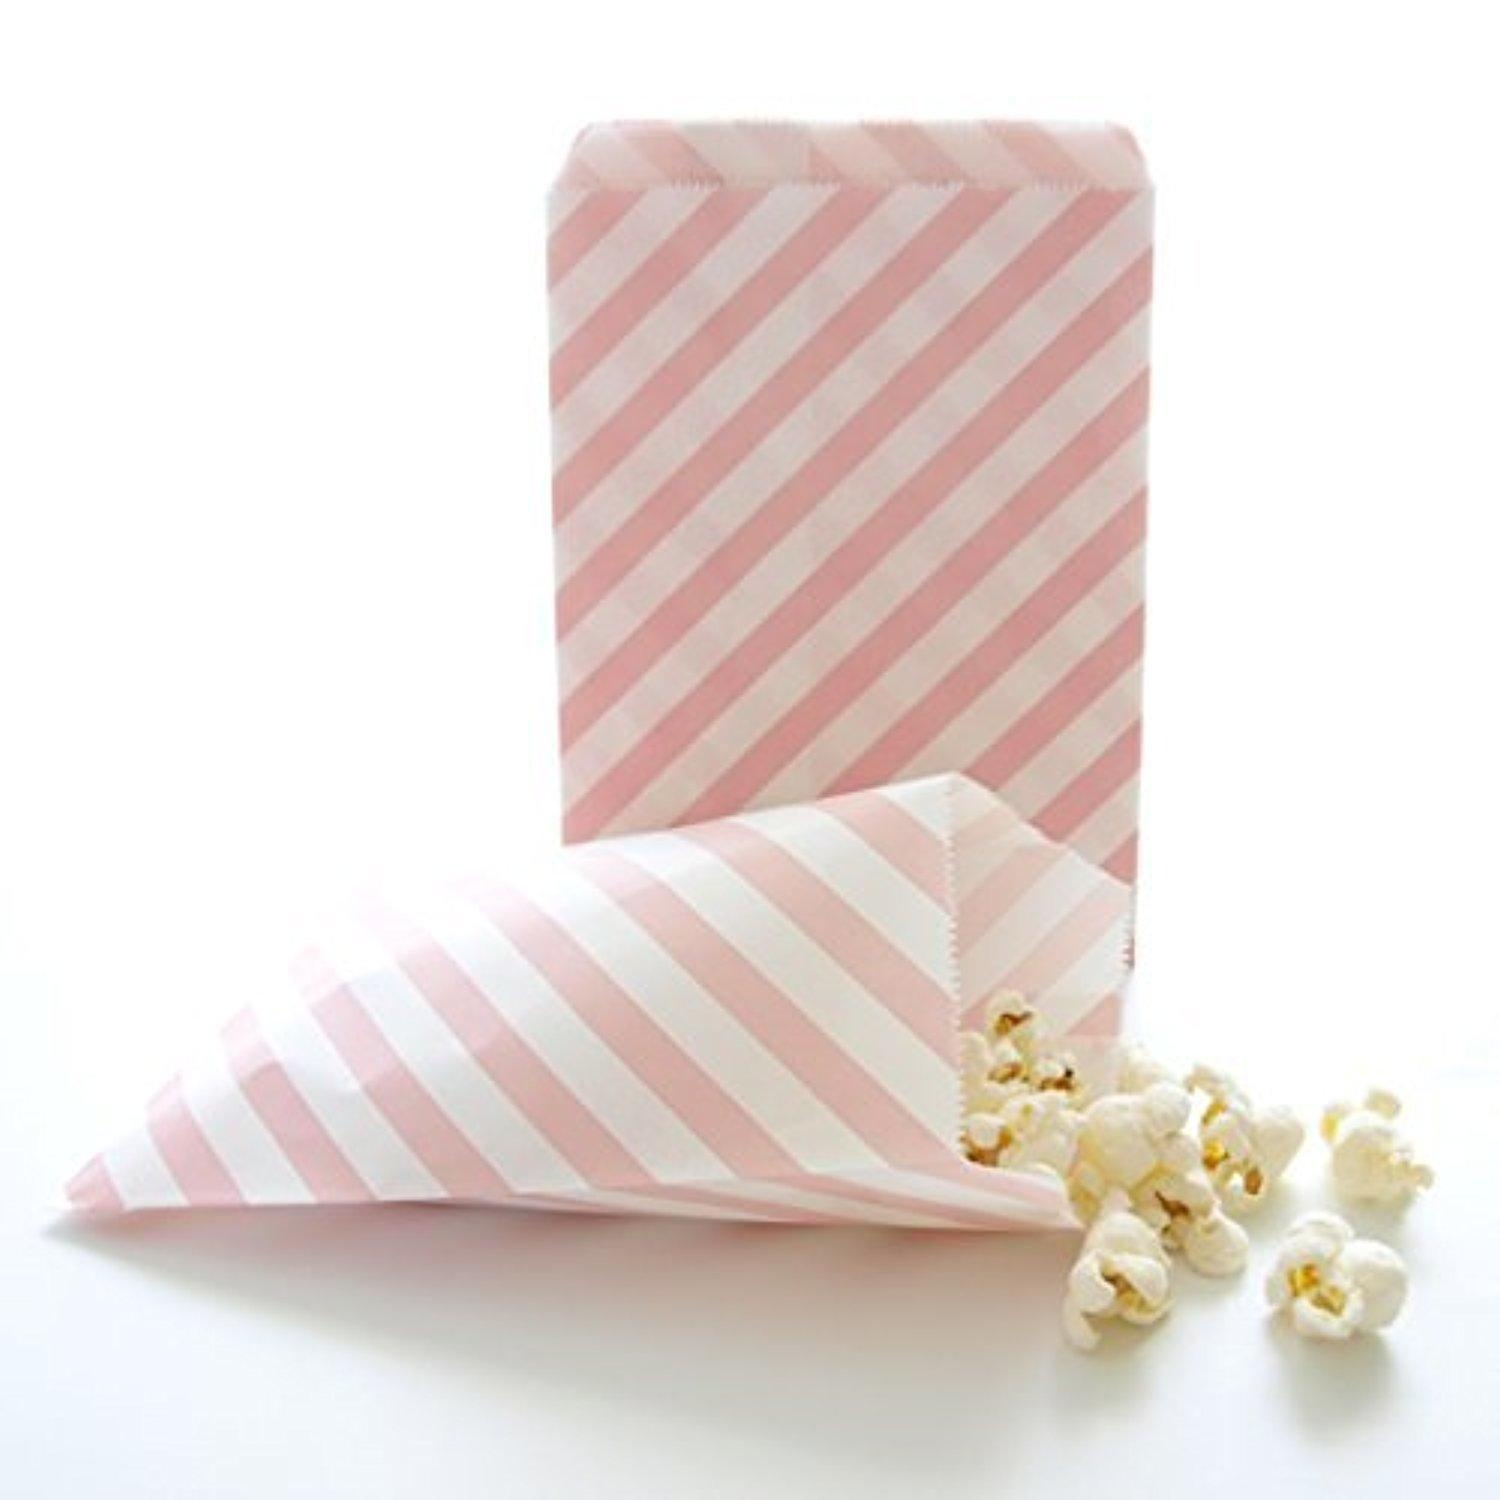 Online Store Pink Goodie Bags Bulk Gift Baby Girl Birthday Party Favors Striped Treat Bag 25 Pack By Food With Fashion